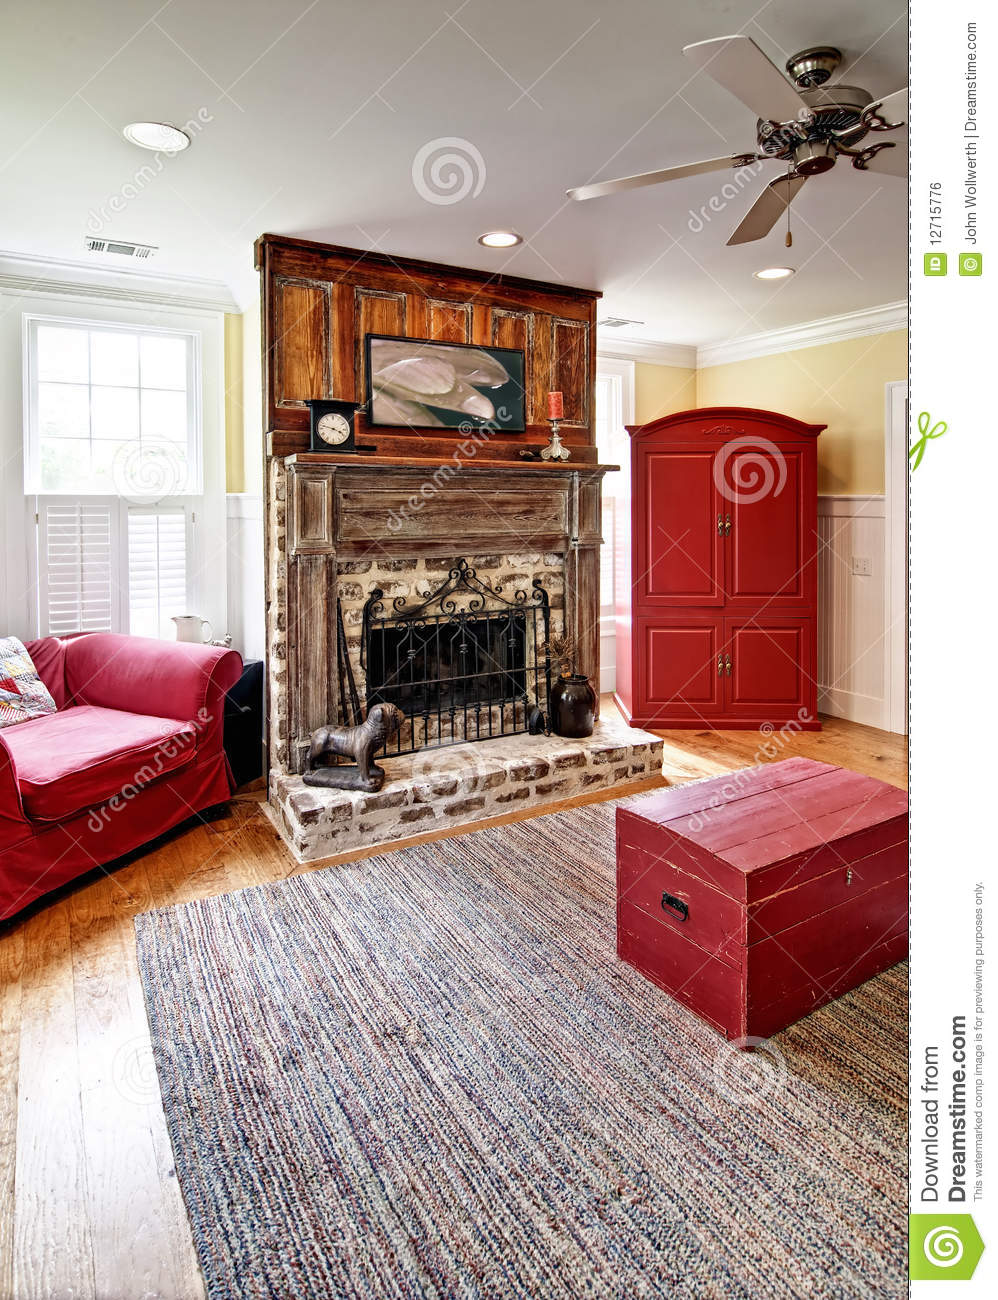 Eclectic Living Room Royalty Free Stock Image Image 12715776